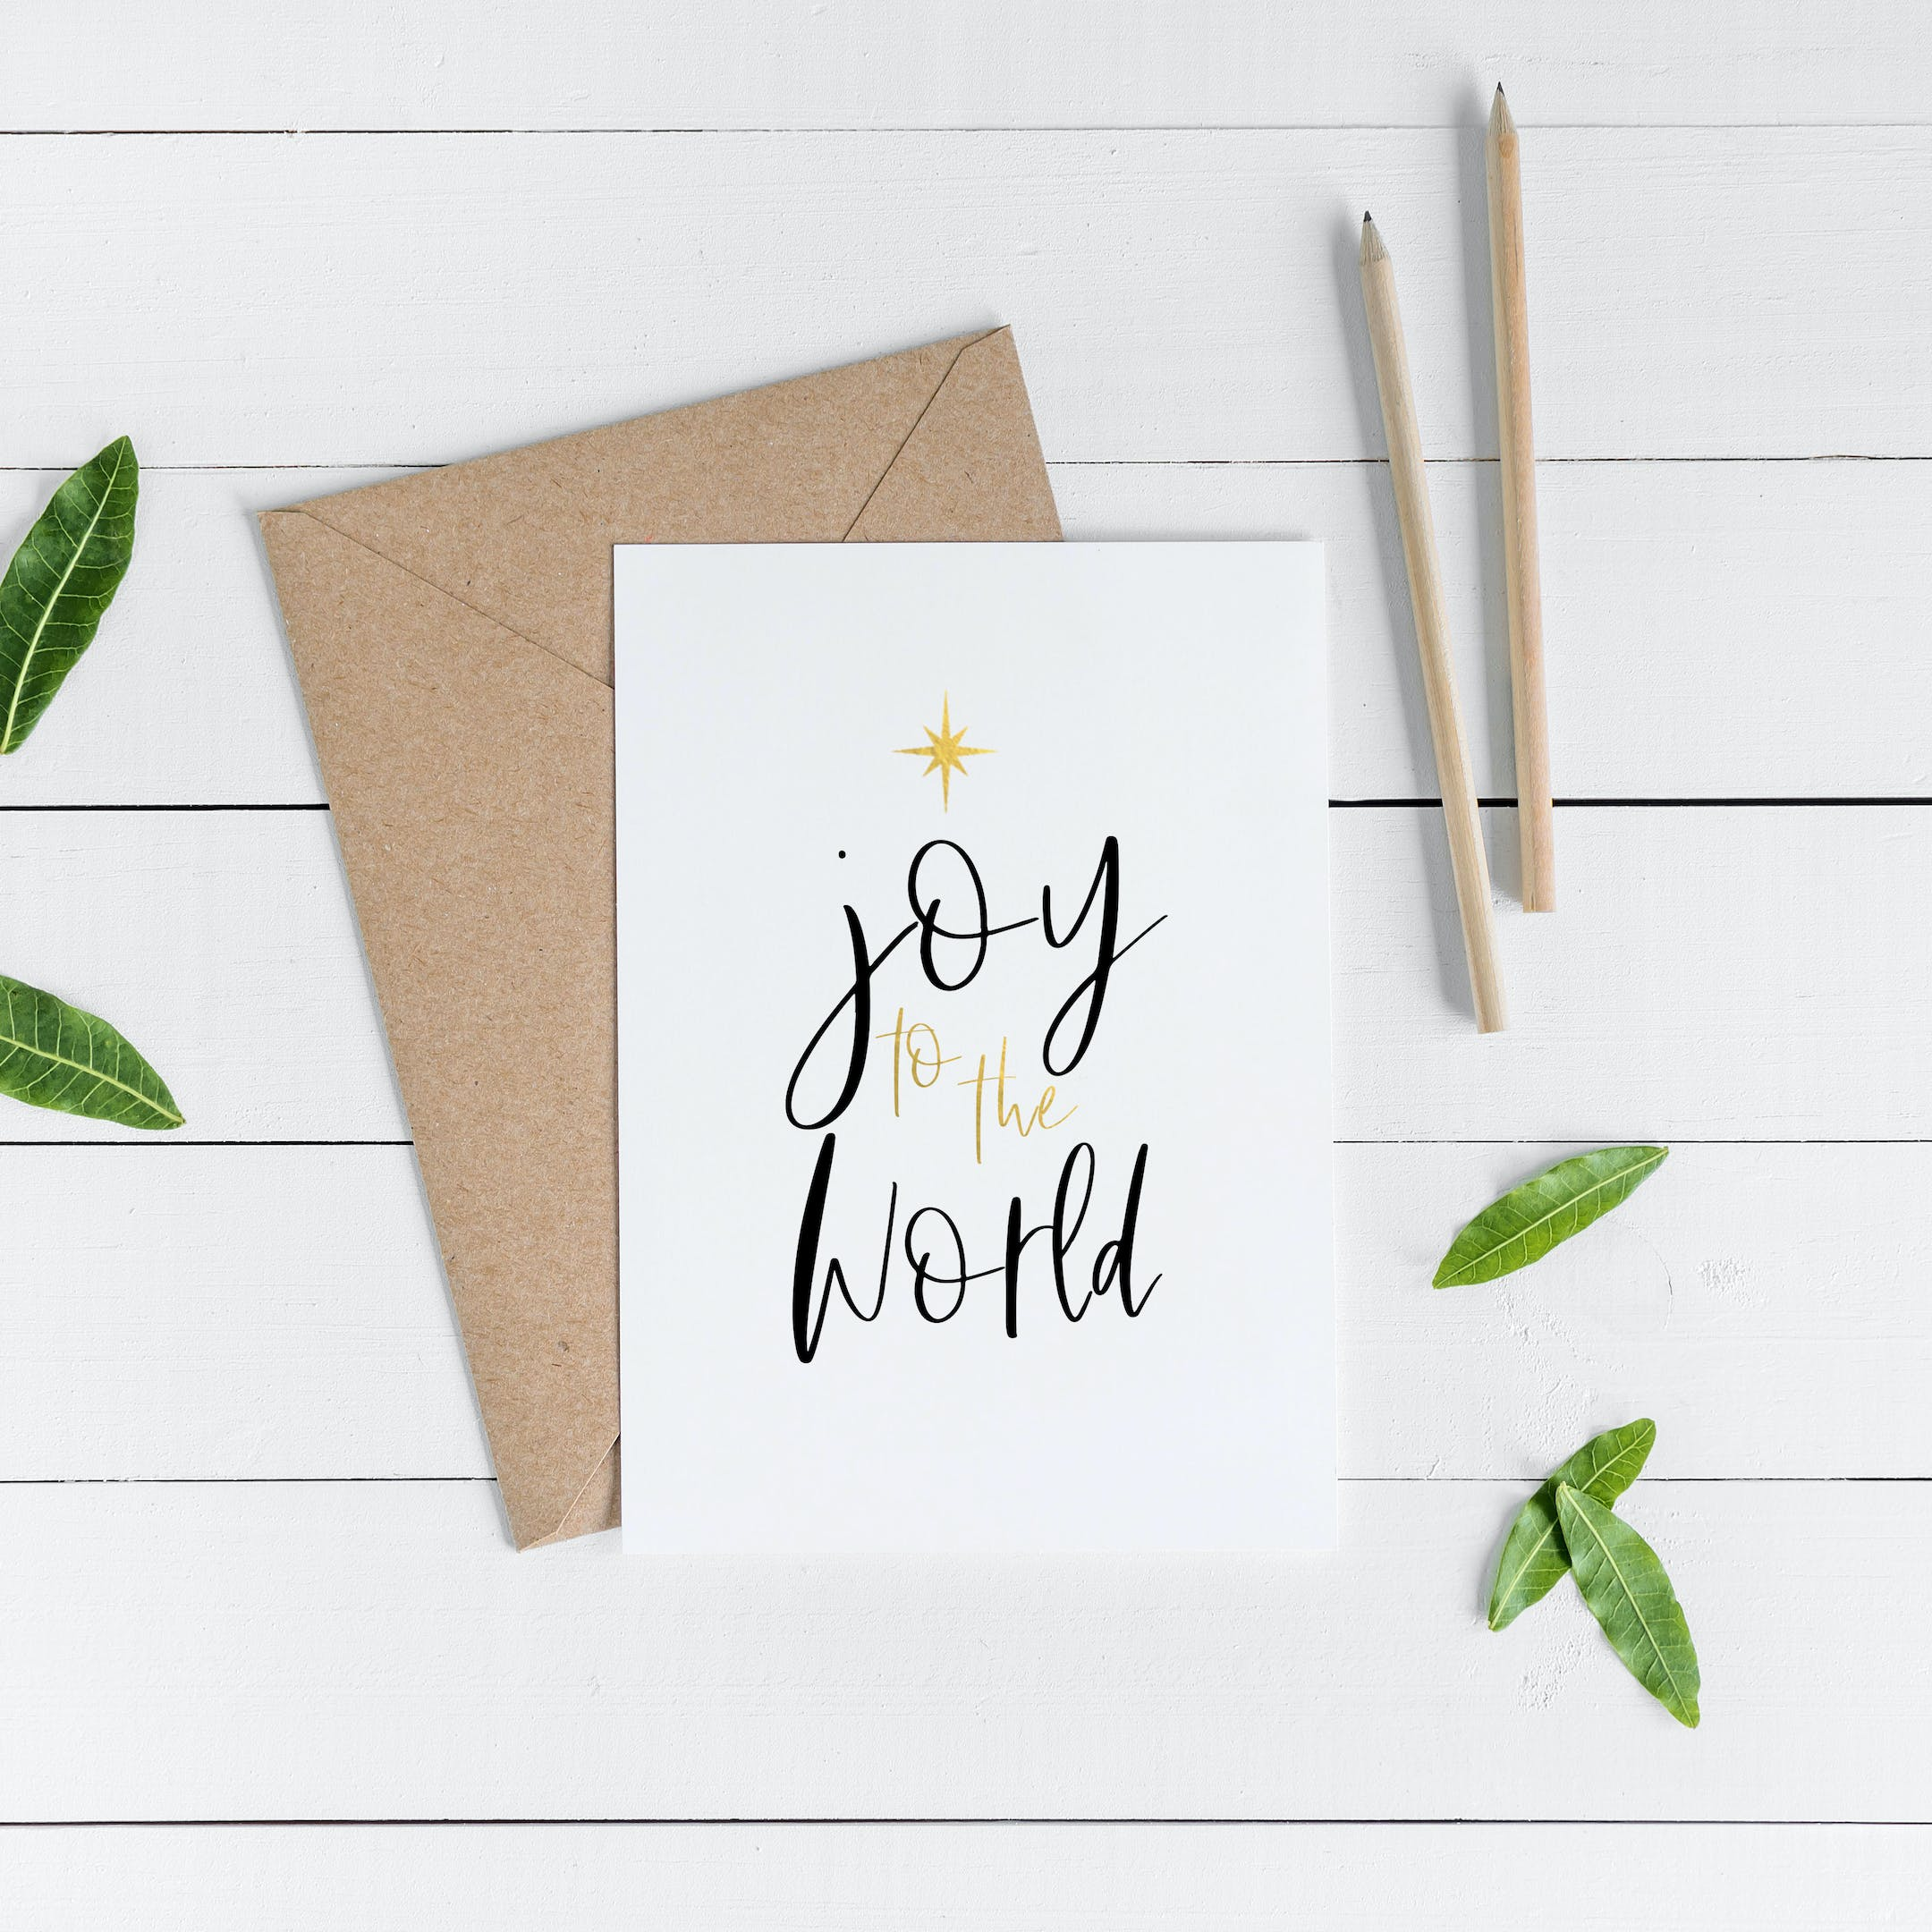 Joy To The World - Carols at Christmas Gold Card - Christian Lettering Company